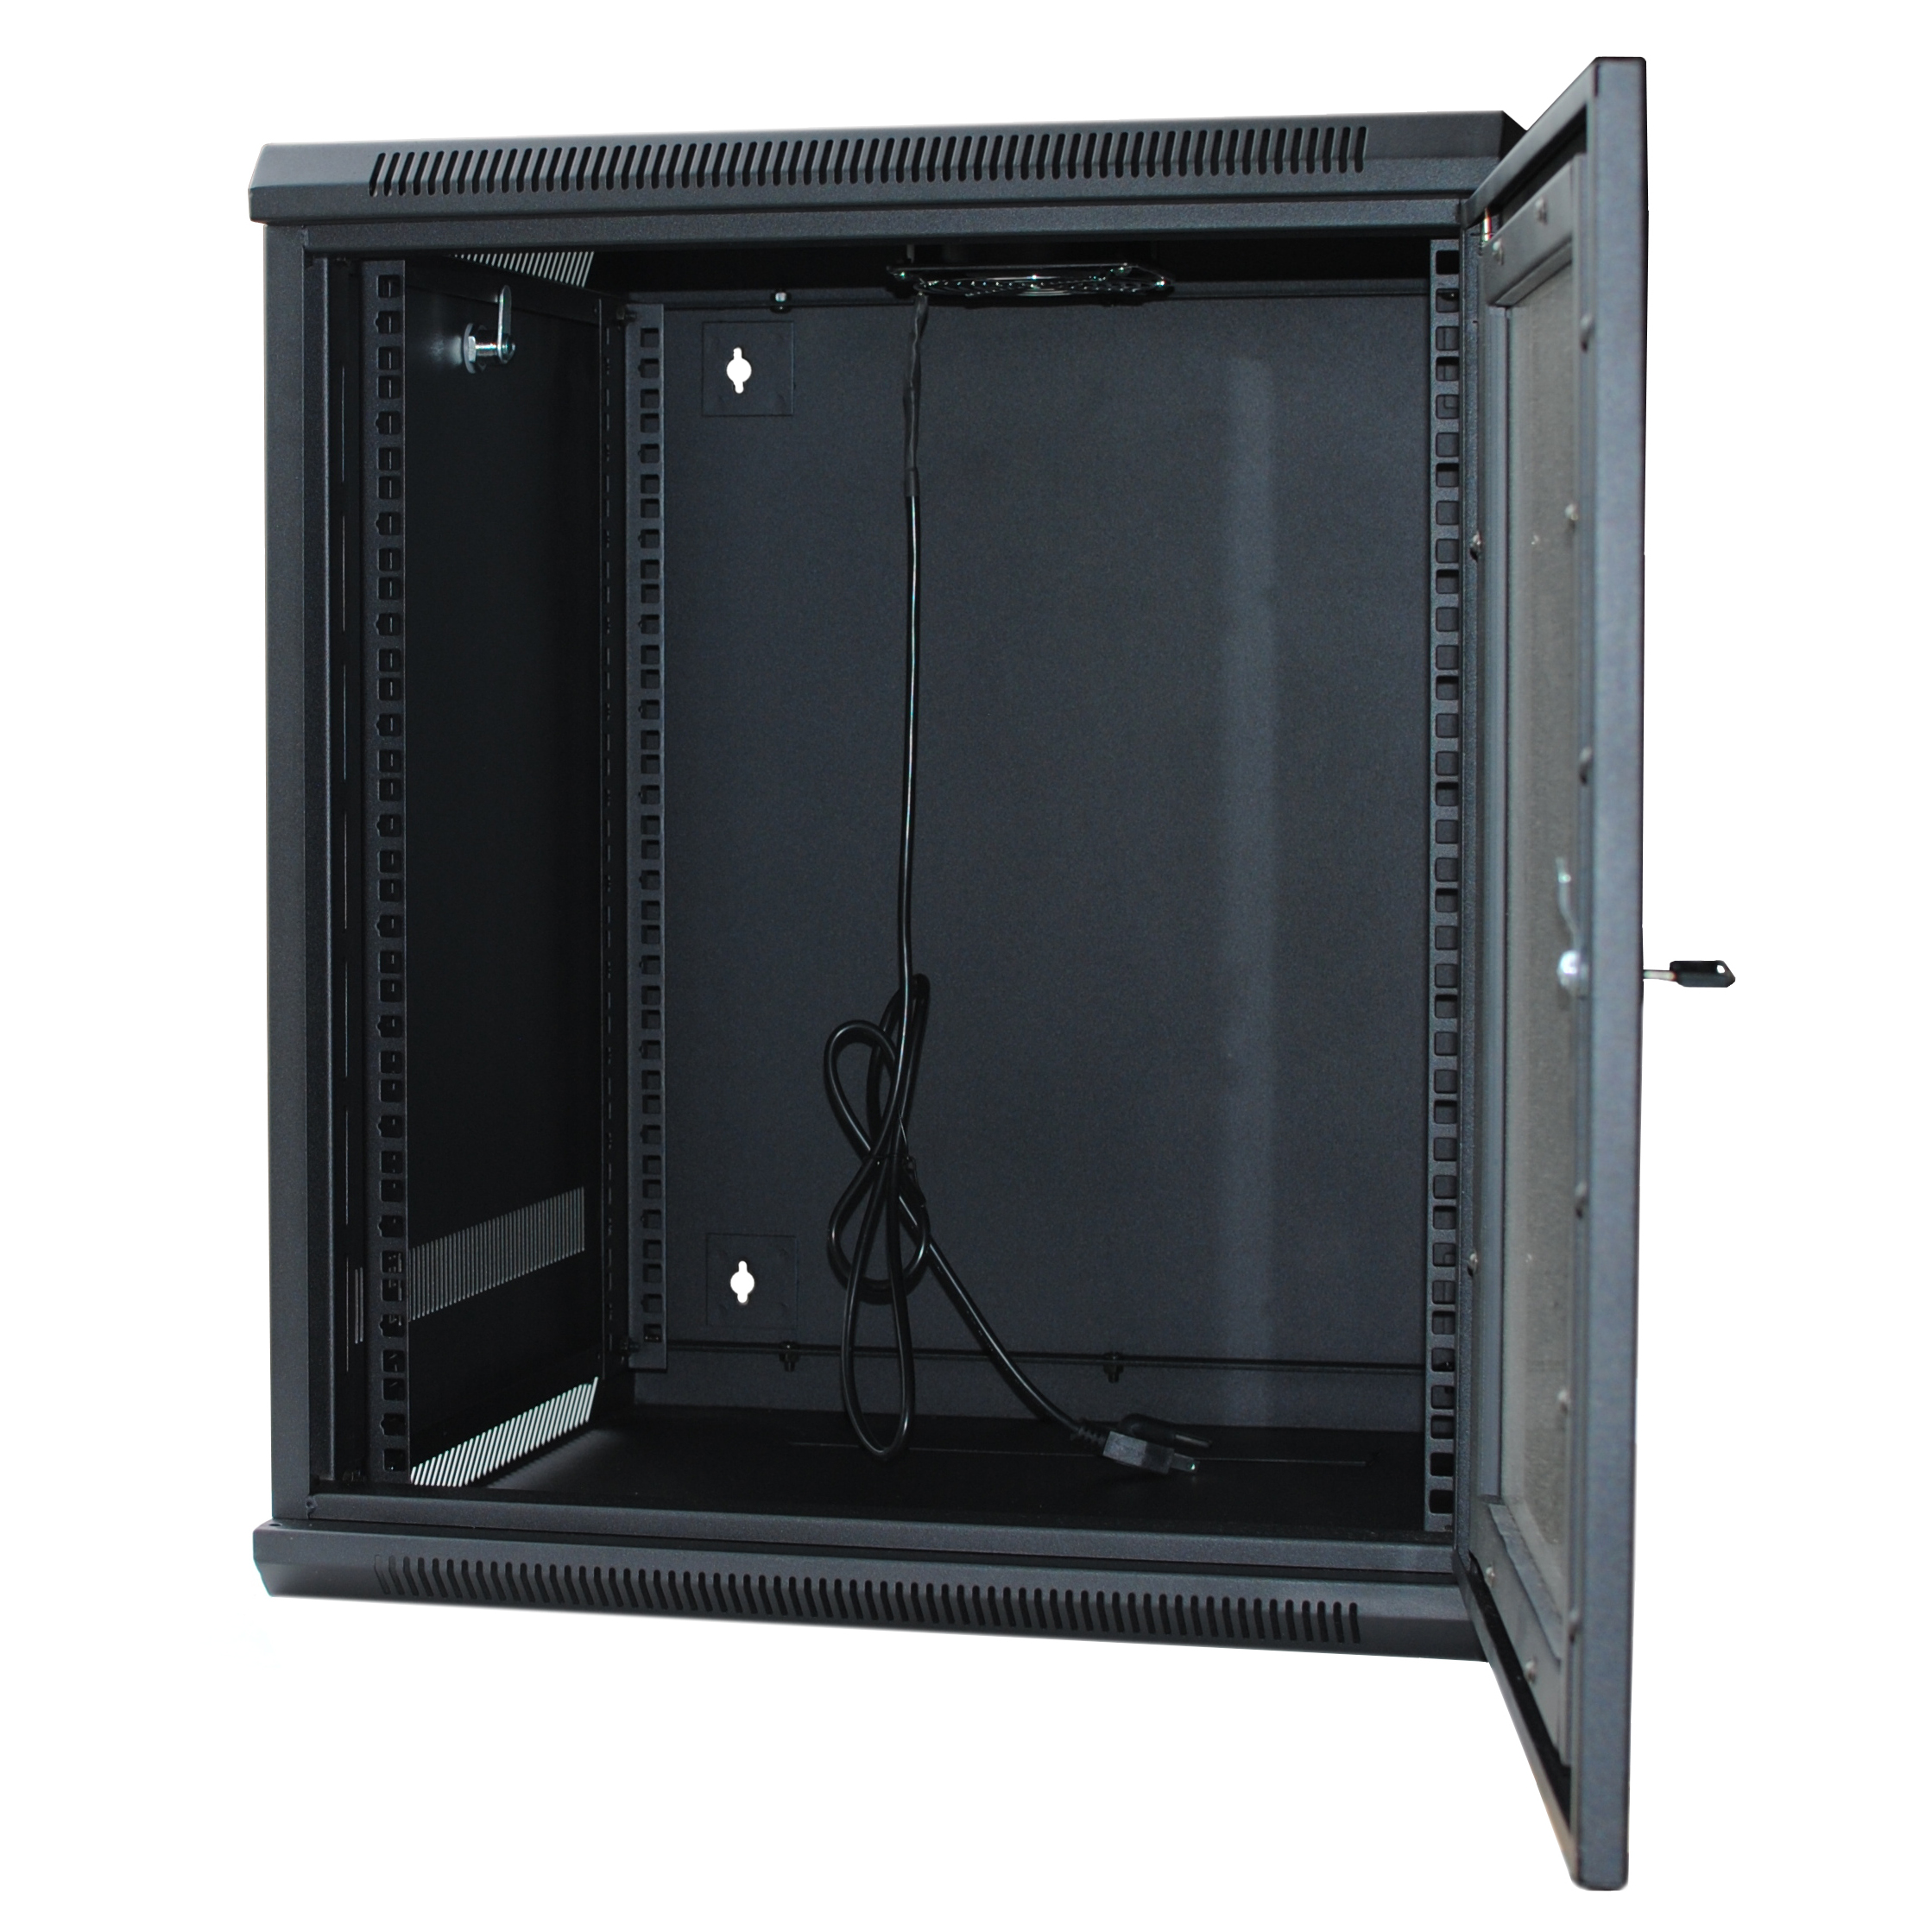 "120278BK - 15U Wall Mount Cabinet Rack w/Locking Glass Door & Cooling Fan - 18"" Deep (Fully Assembled)"